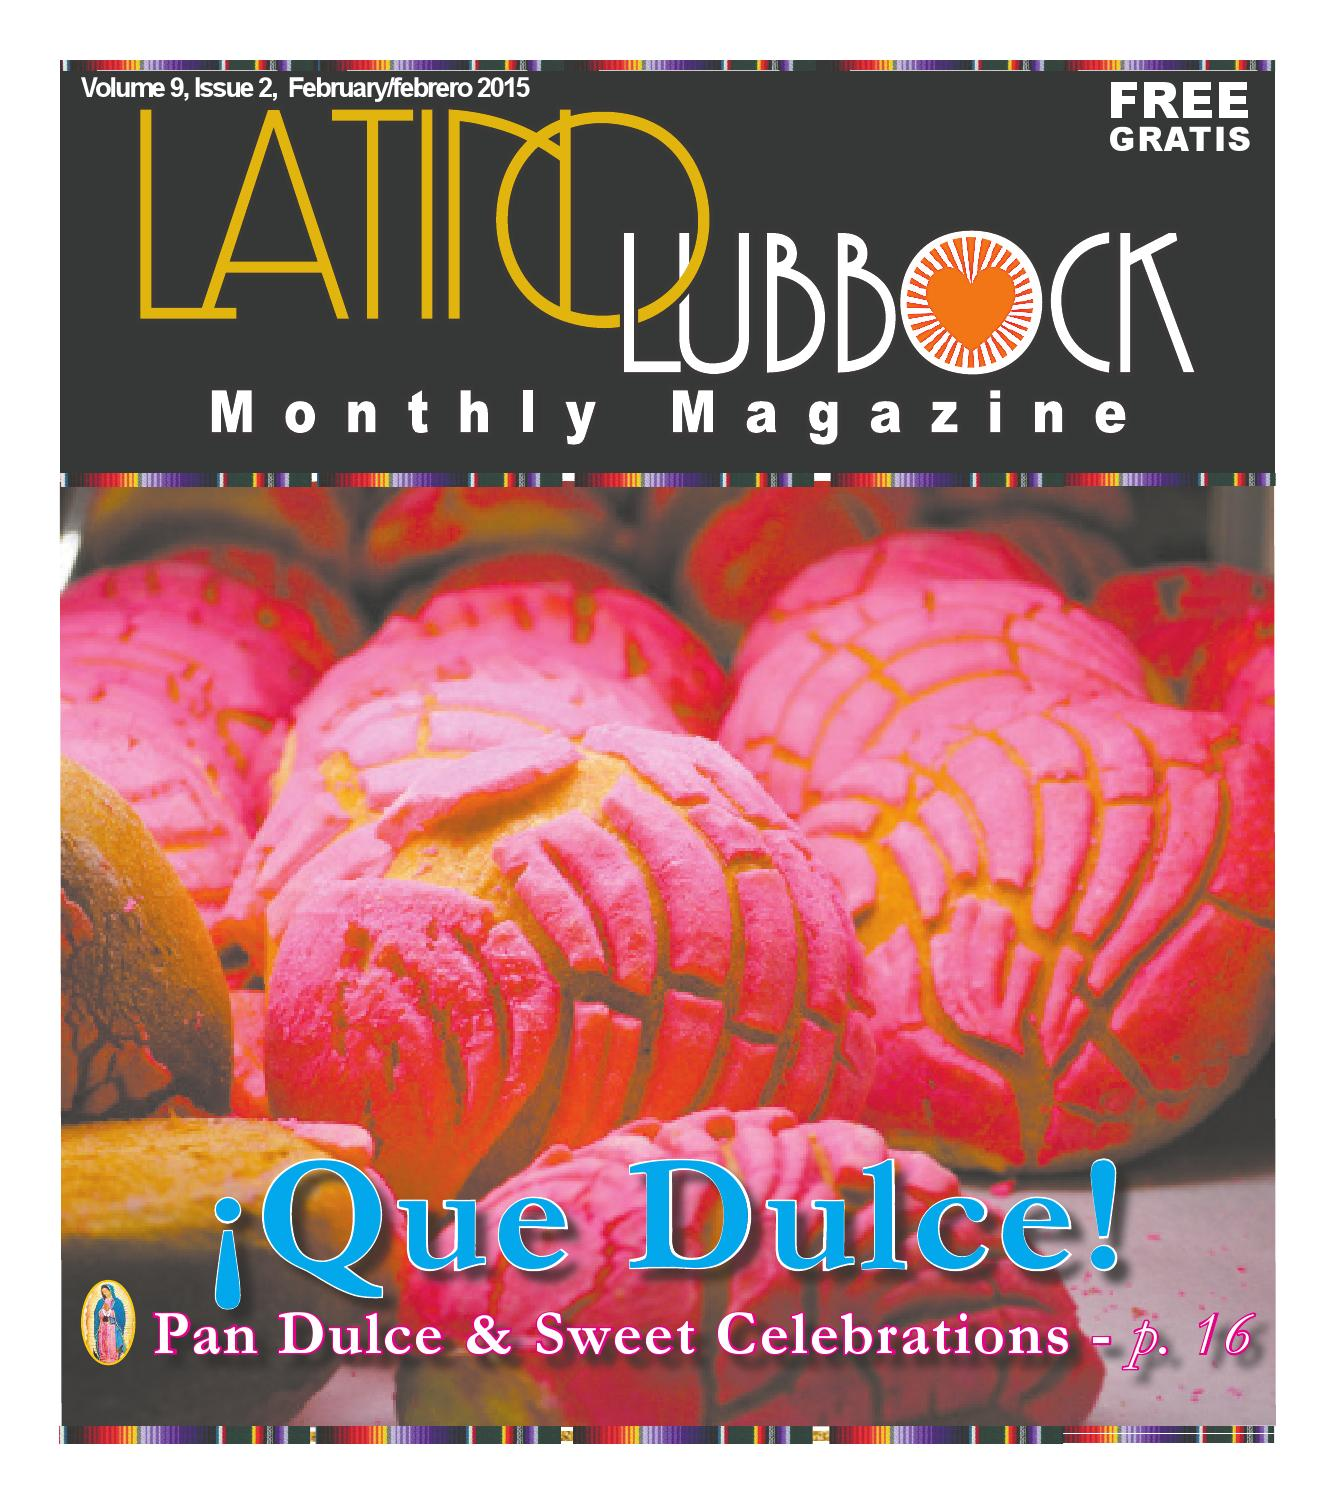 February latino lubbock vol 9 issue 2 by christy martinez garcia february latino lubbock vol 9 issue 2 by christy martinez garcia issuu aiddatafo Gallery